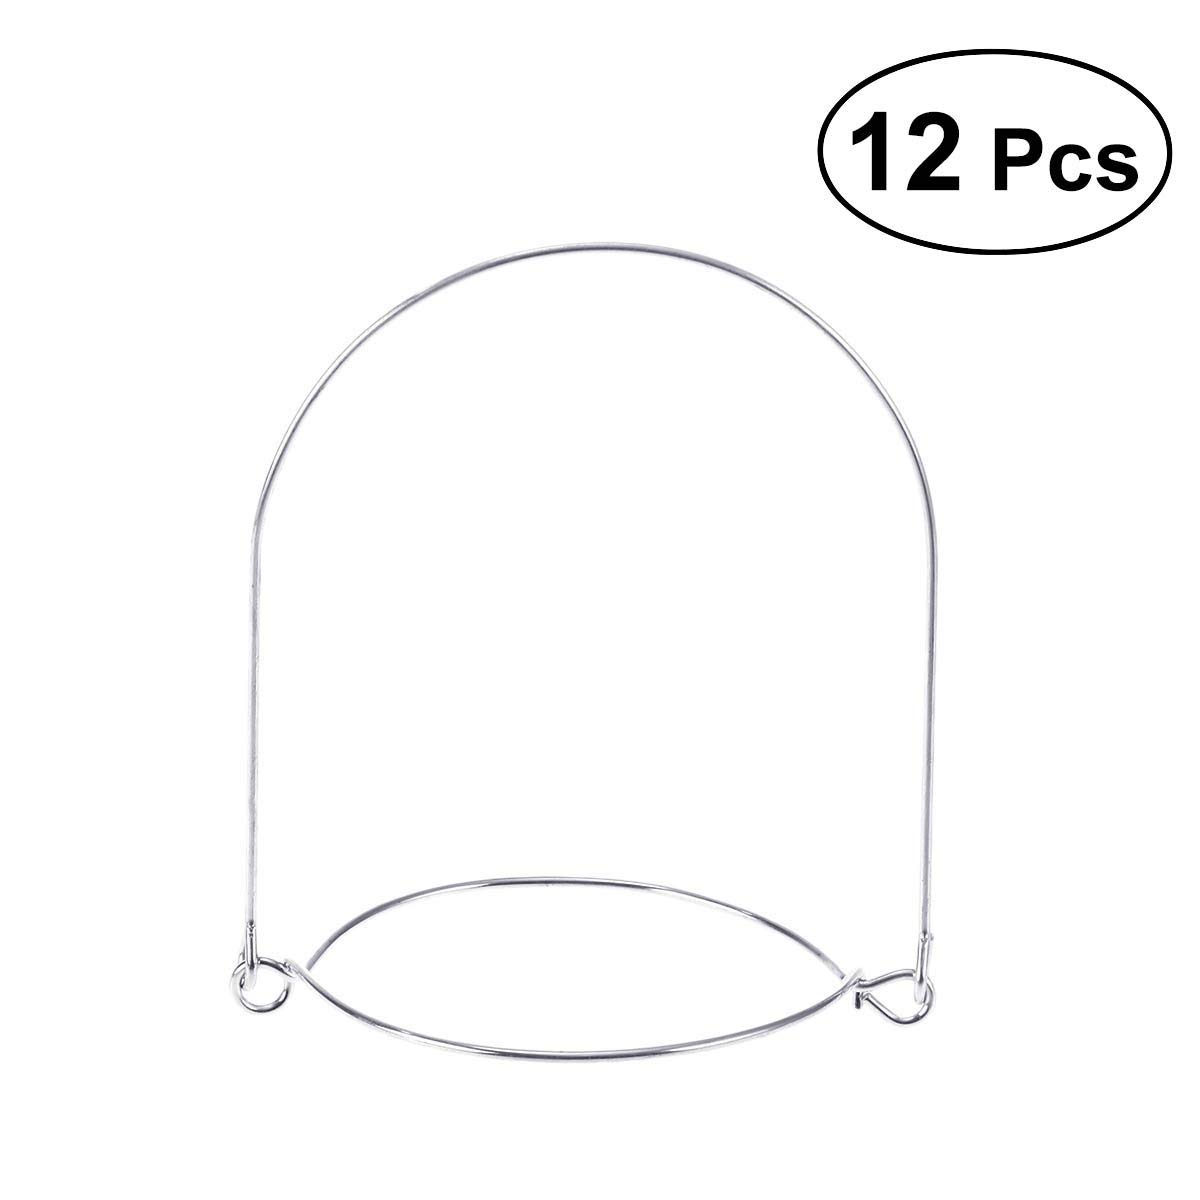 BESTONZON 12pcs Mason Jar Wire Handles Stainless Steel Canning Jars Hanger for Regular Mouth